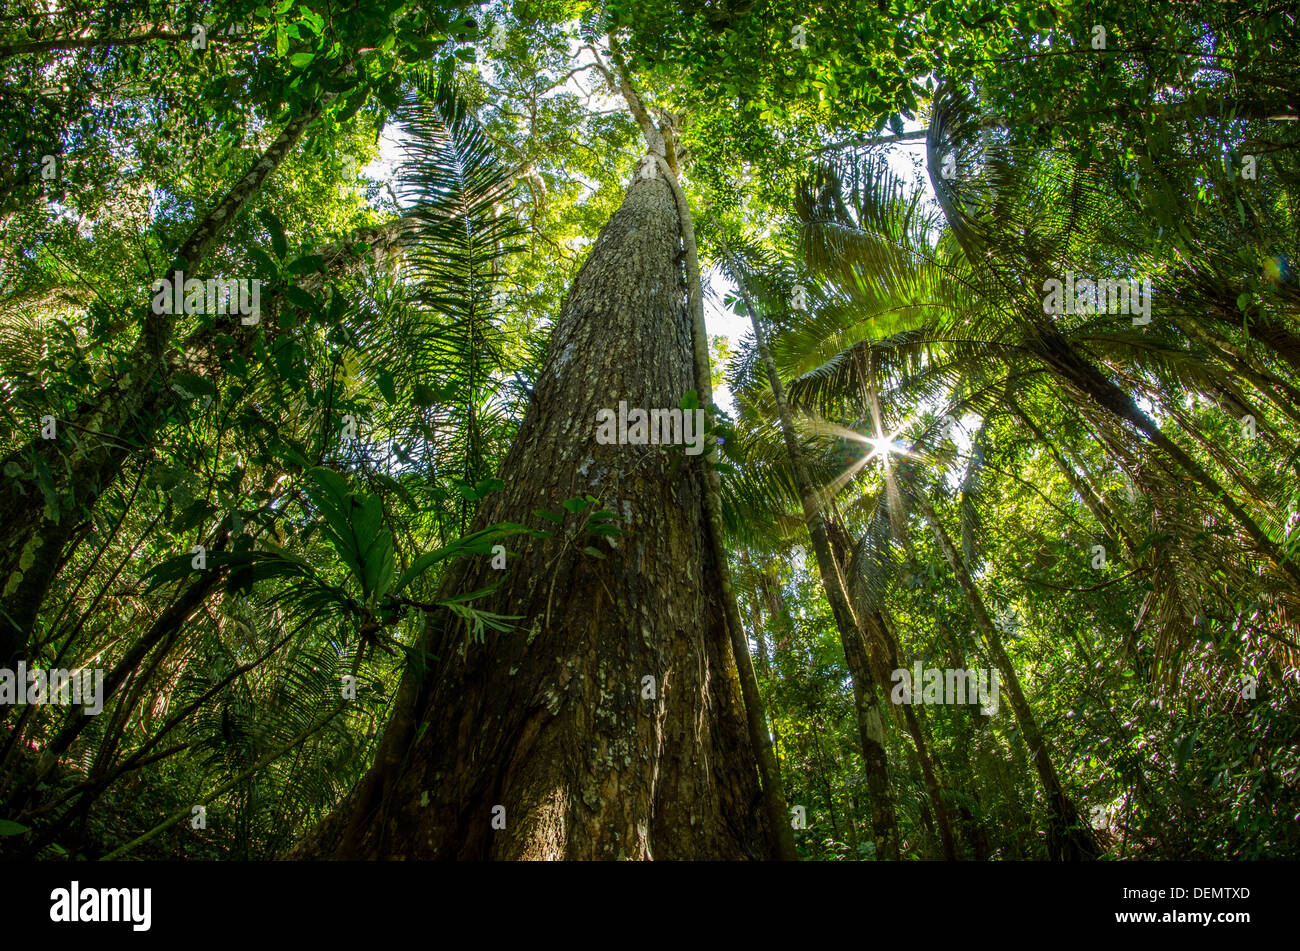 Rainforest Timber Tree High Resolution Stock Photography and Images - Alamy